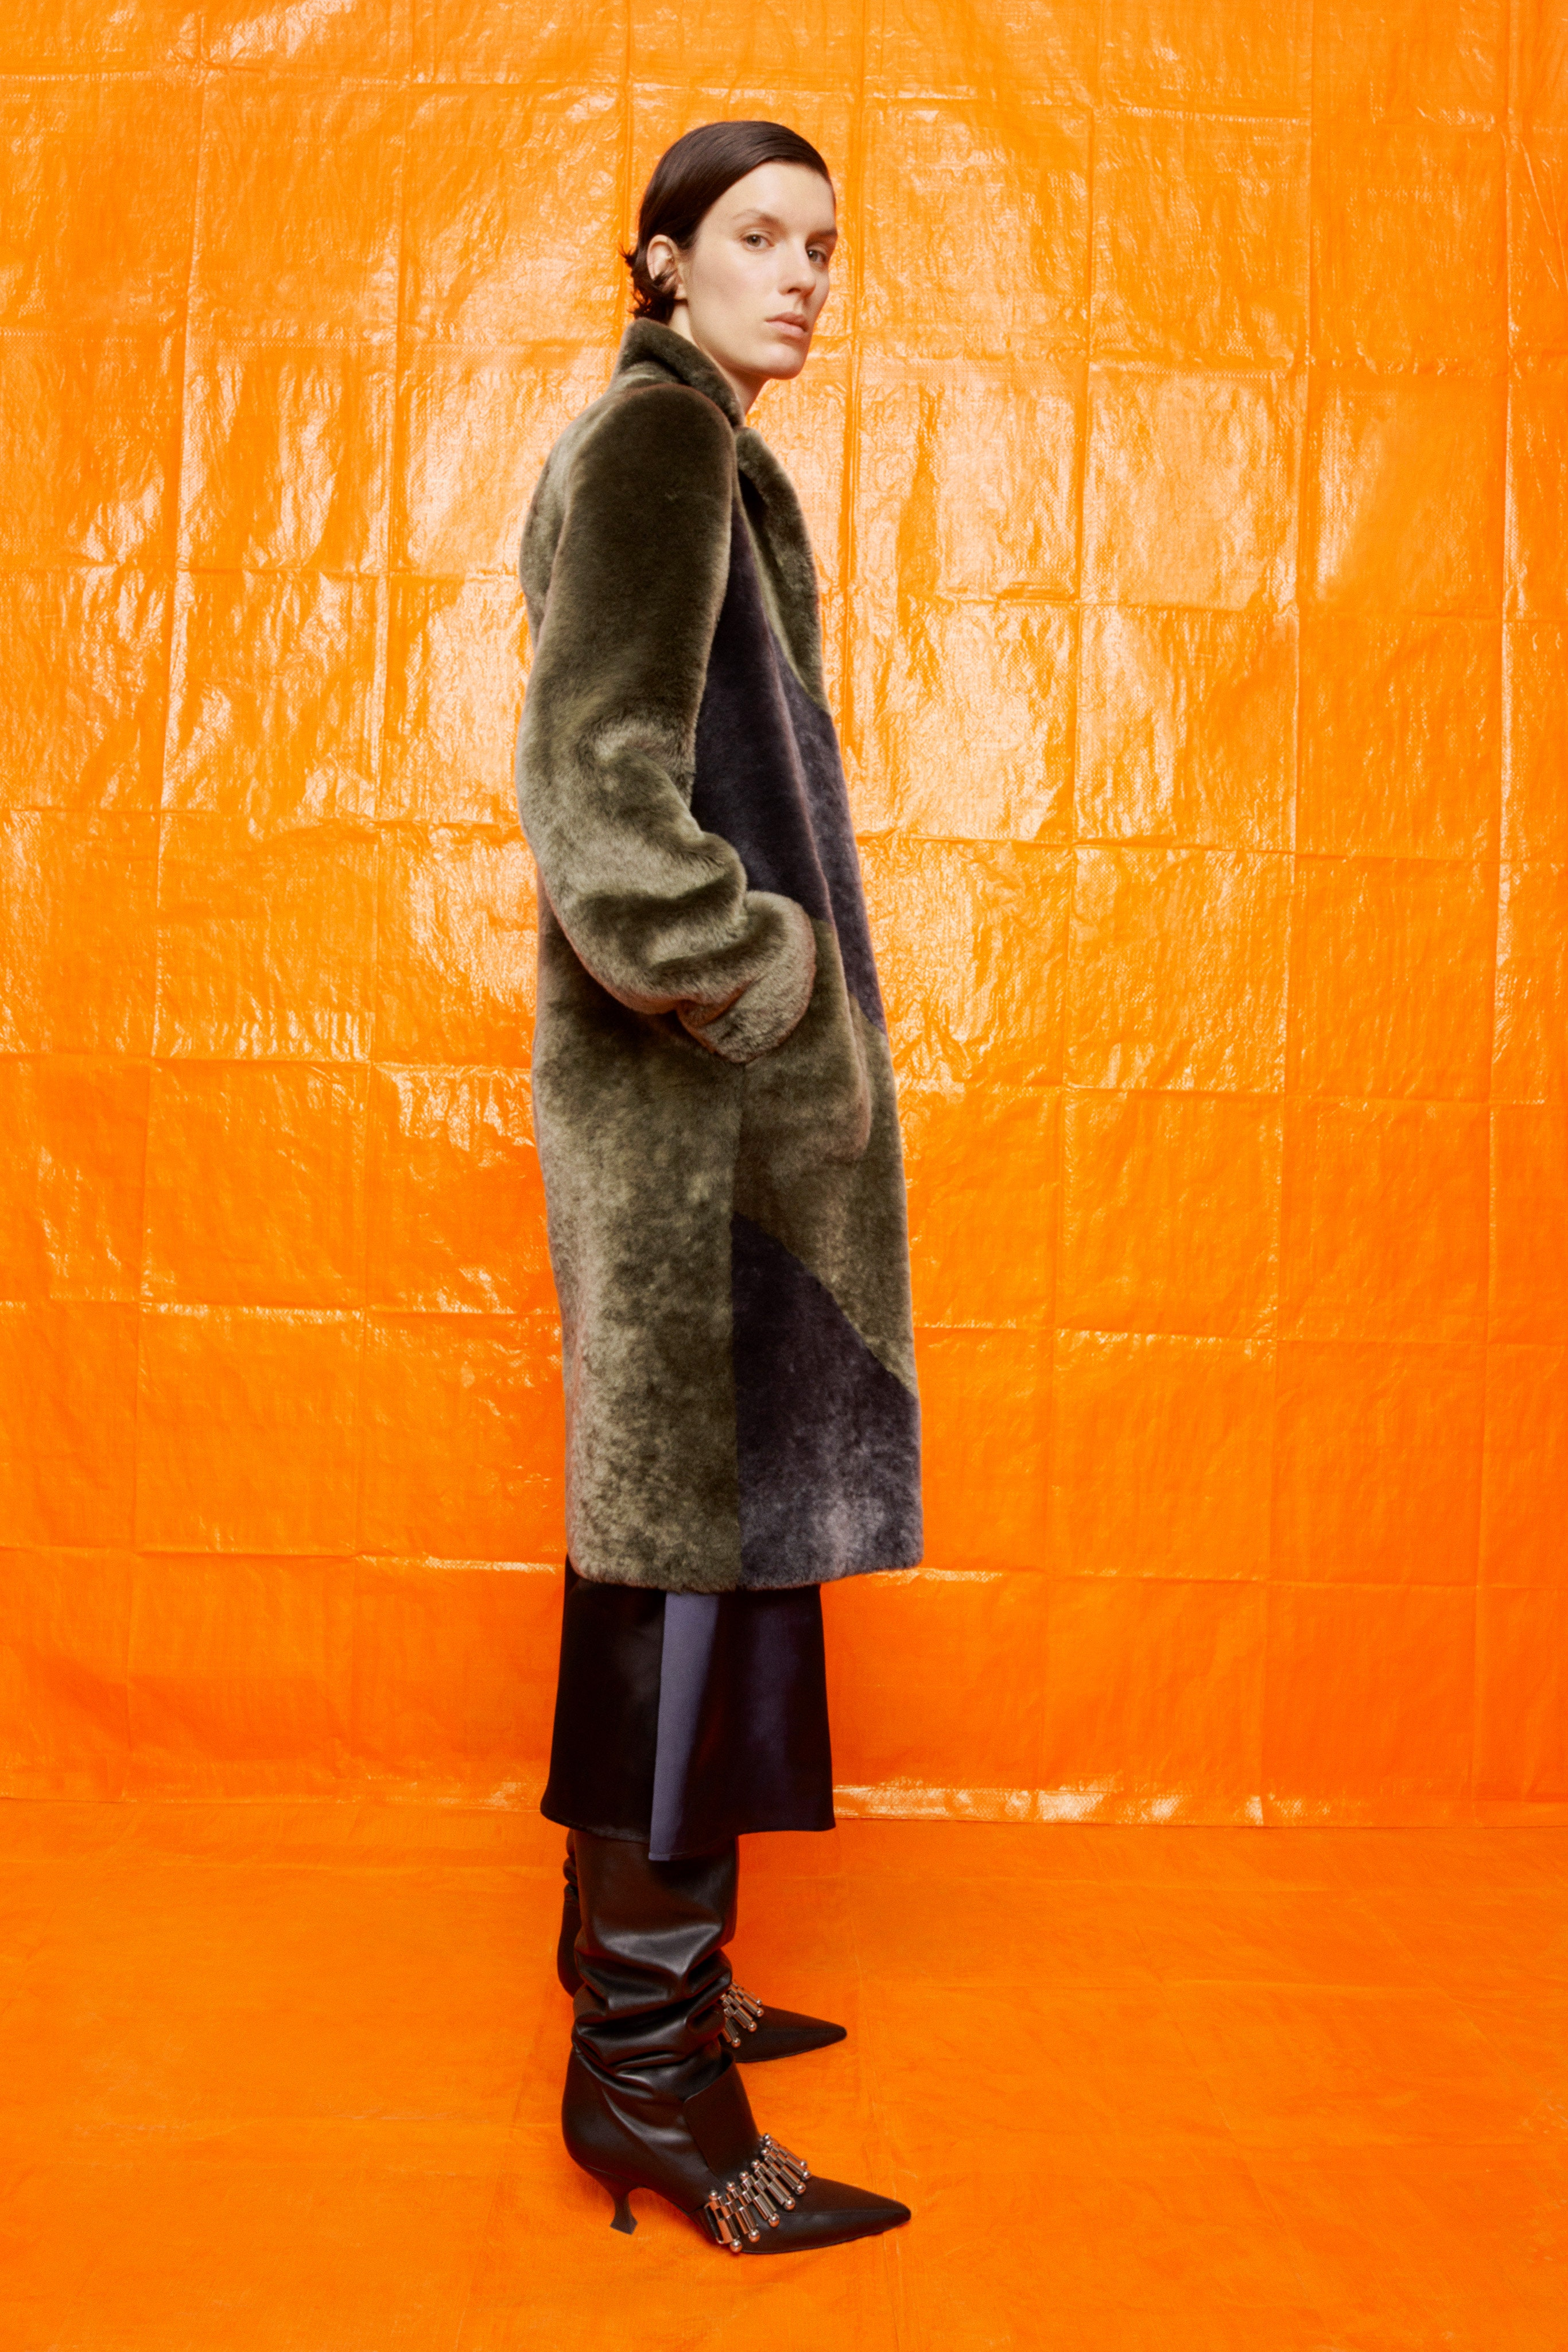 For walks in the fresh air: A seasonal collection of Jil Sander arrived at Asthik (photo 38)